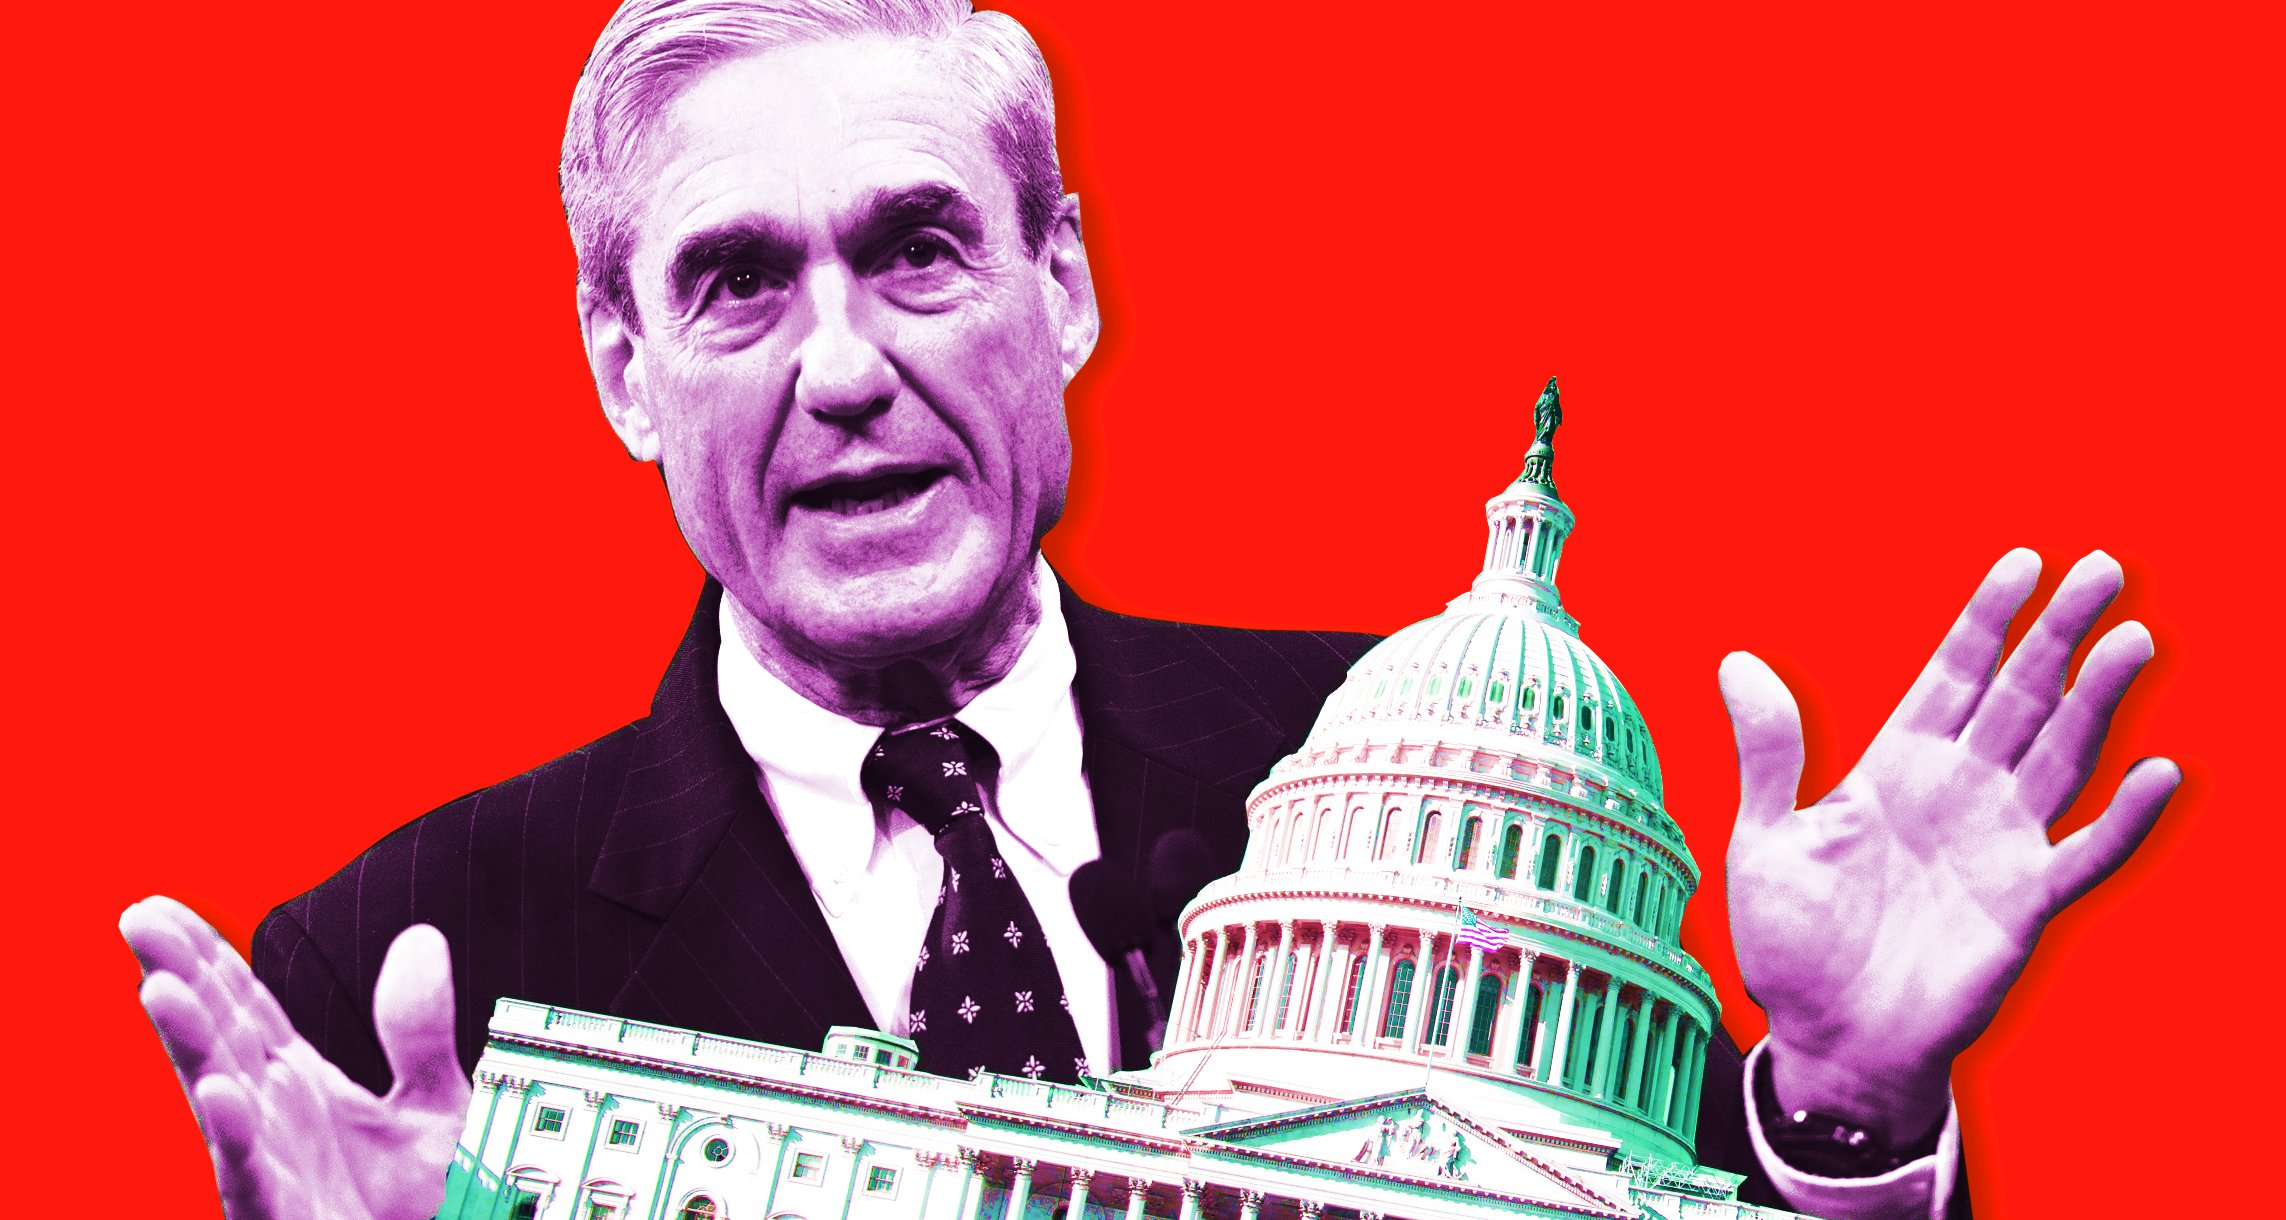 Welcome to the Mueller show where millions of tax dollars go to indicting Russians who cannot be extradited to the United States to even stand for a show trial. The most important thing to take away from this Russian indictment charade is this: there are no allegations that any American was a participant in the …